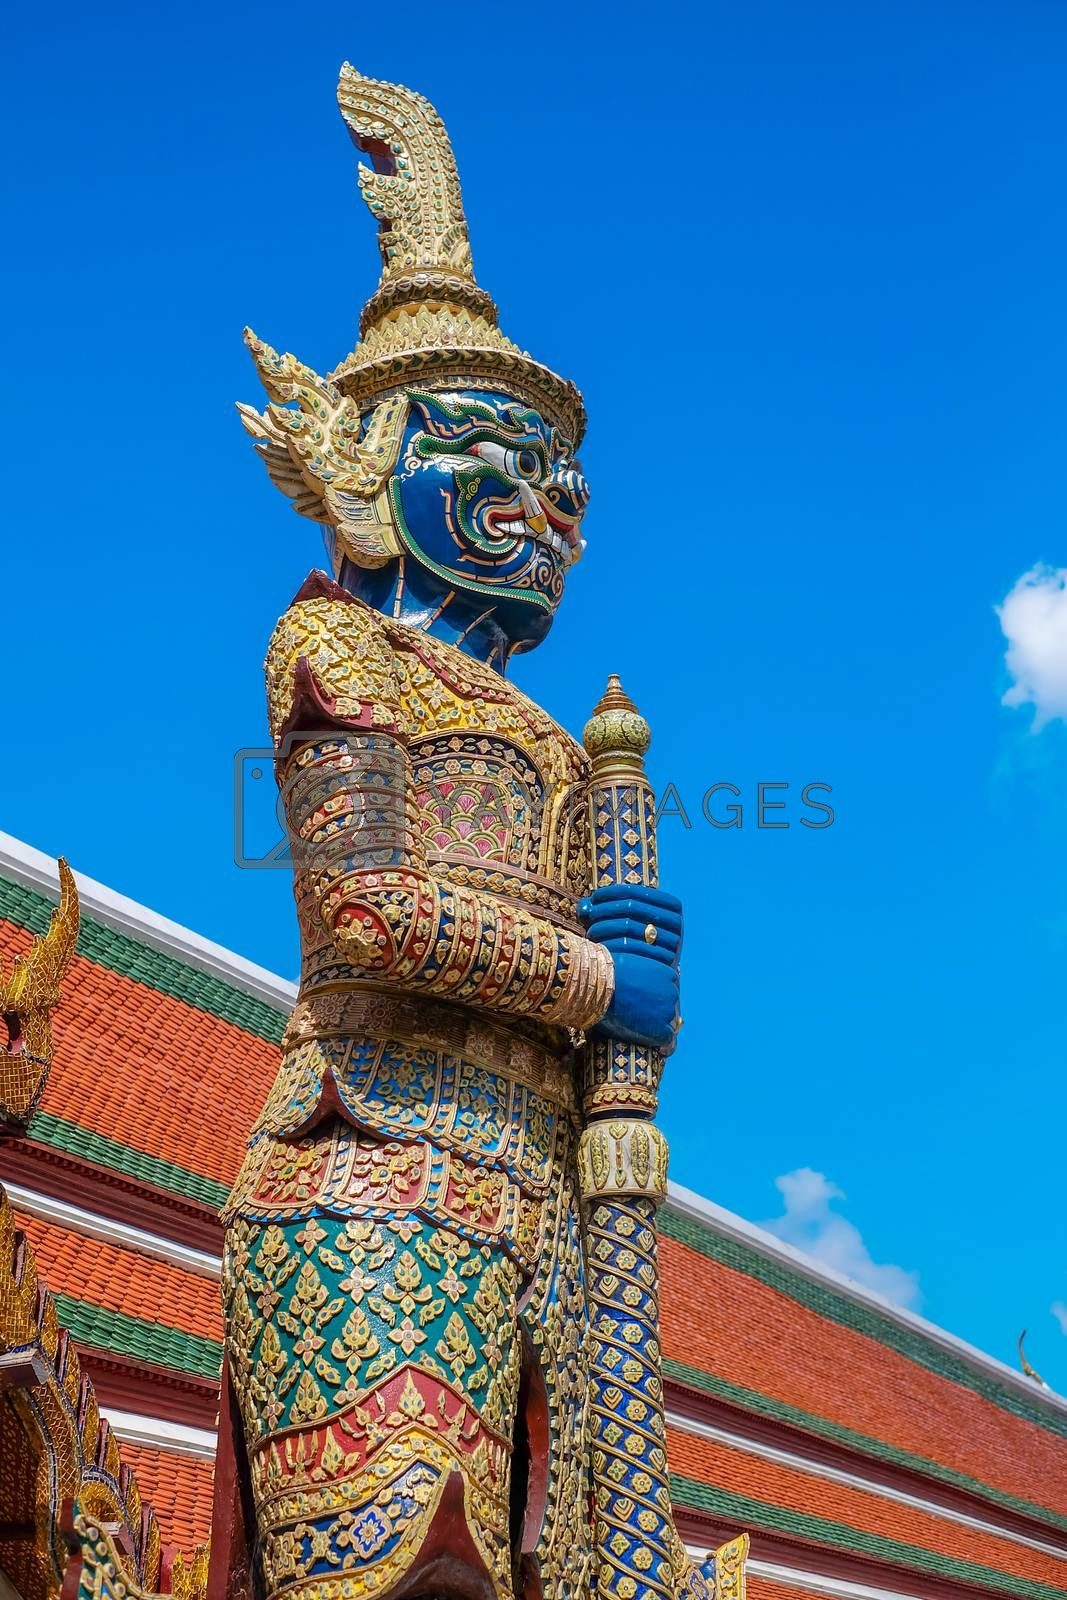 Blue Giant in Thailand on Blue sky